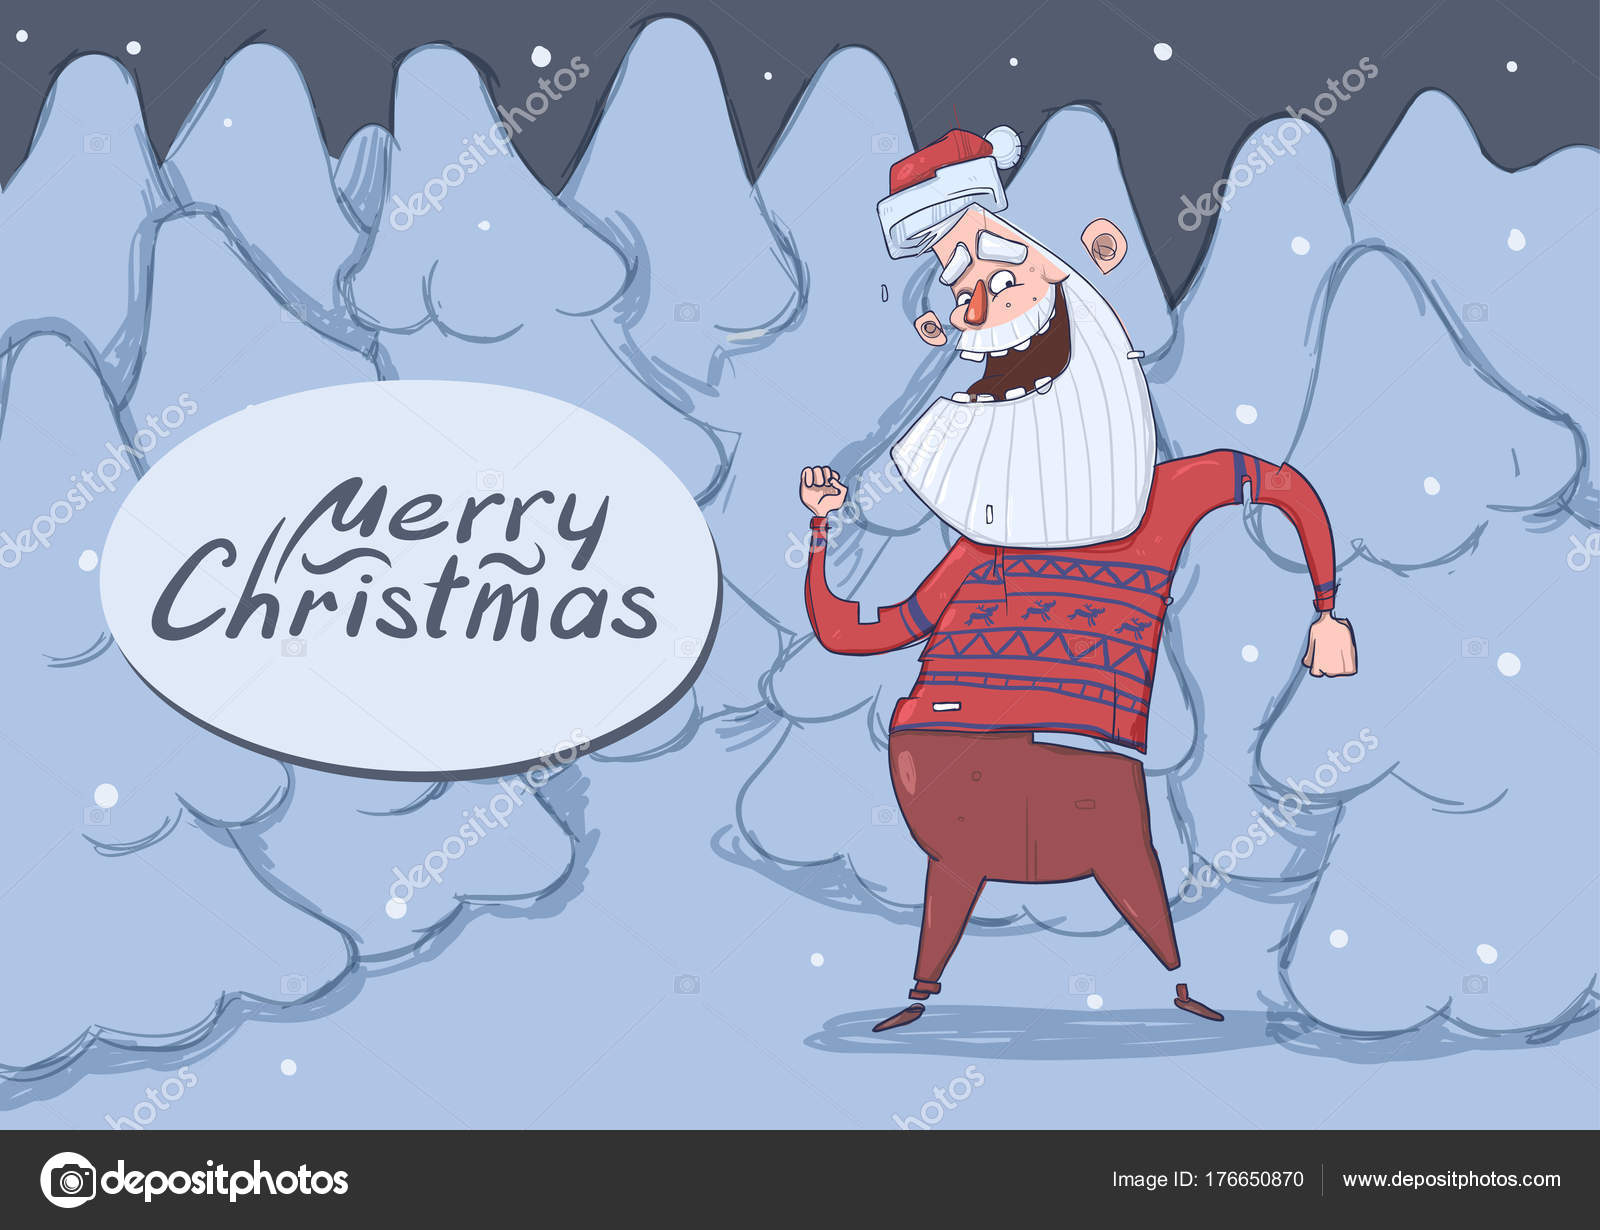 Christmas card of funny Santa Claus dancing in snowy night forest ...